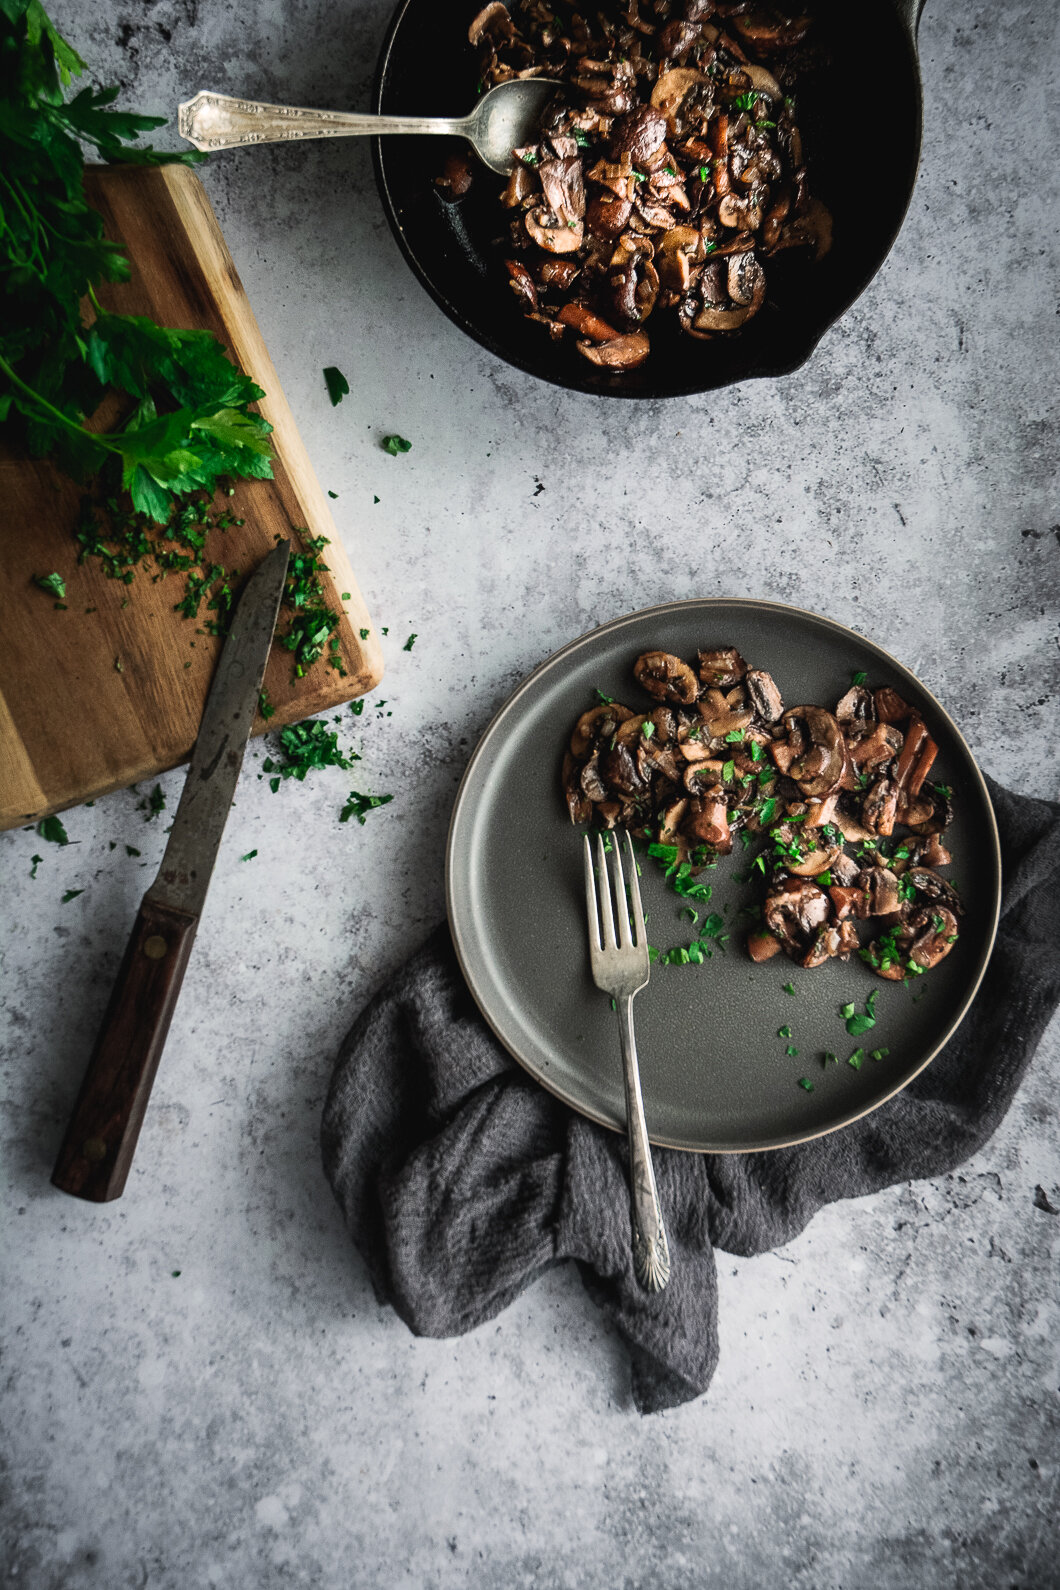 Sautéed mushrooms in plan and on plate